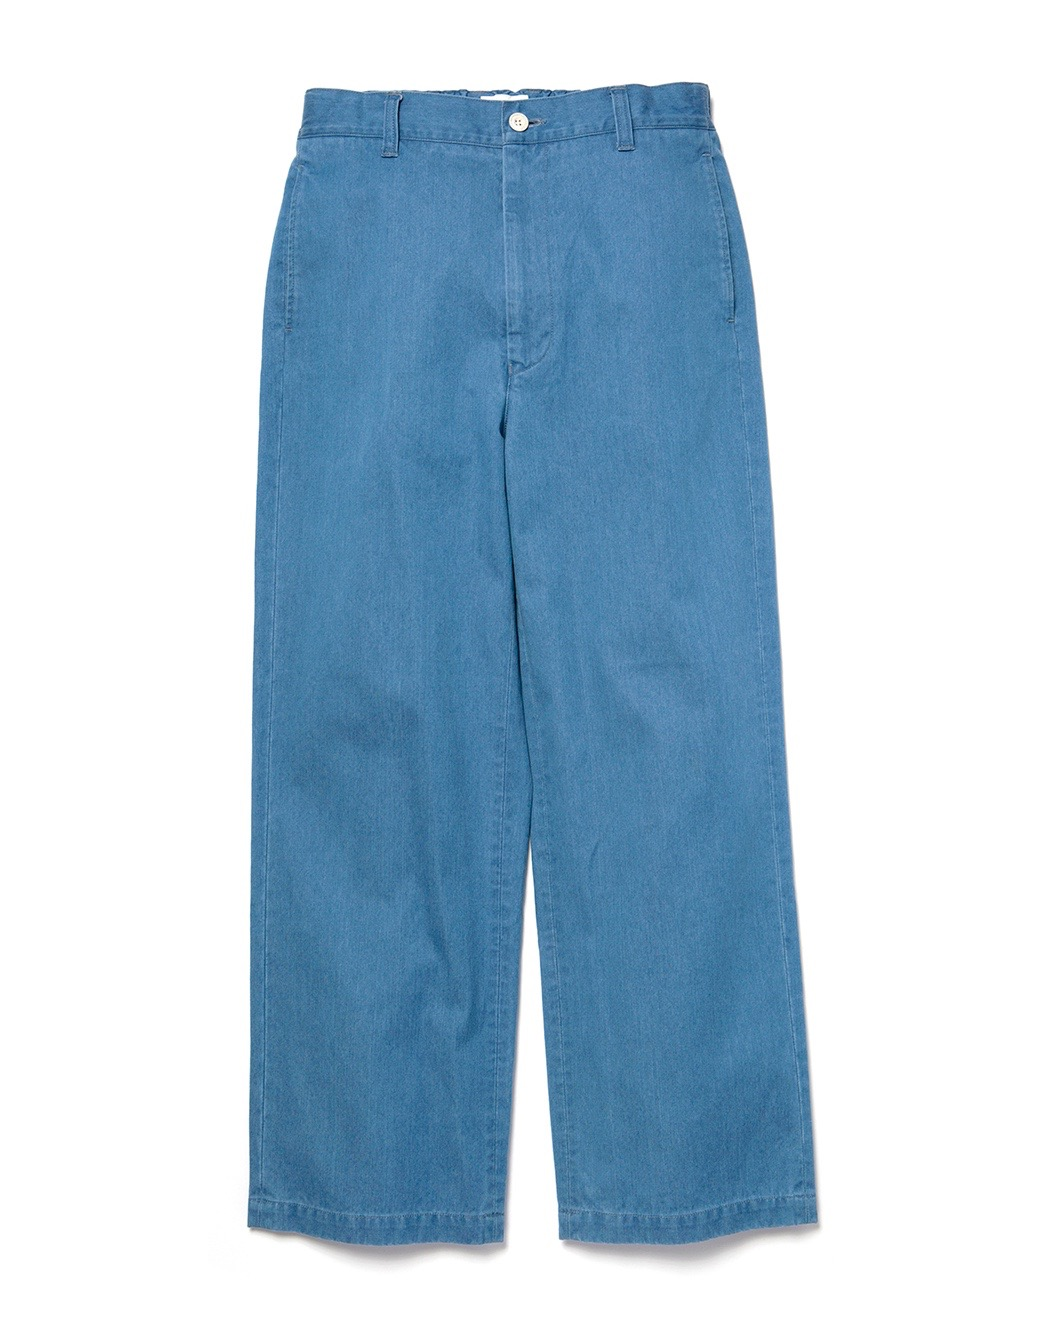 VLANK CONCEPT WEAR 5 POCKETS WIDE DENIM PANTS